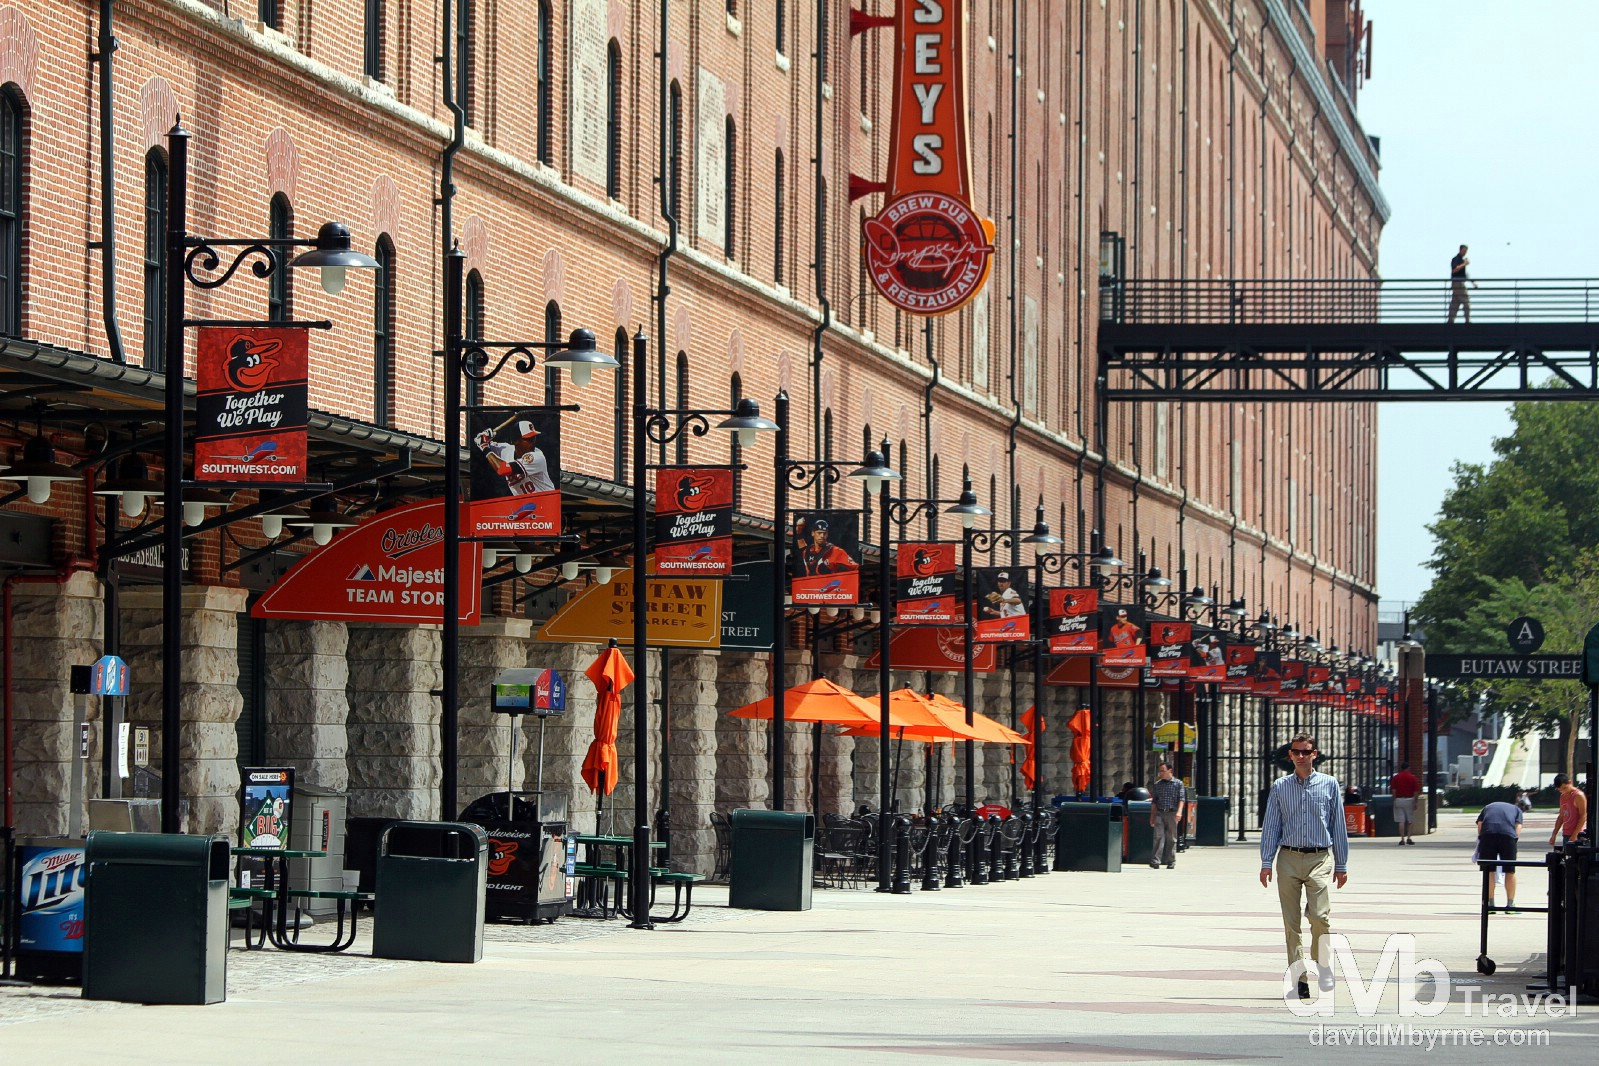 B&O Warehouse. Oriole Park at Camden Yards, Baltimore, Maryland, USA. July 10th 2013.